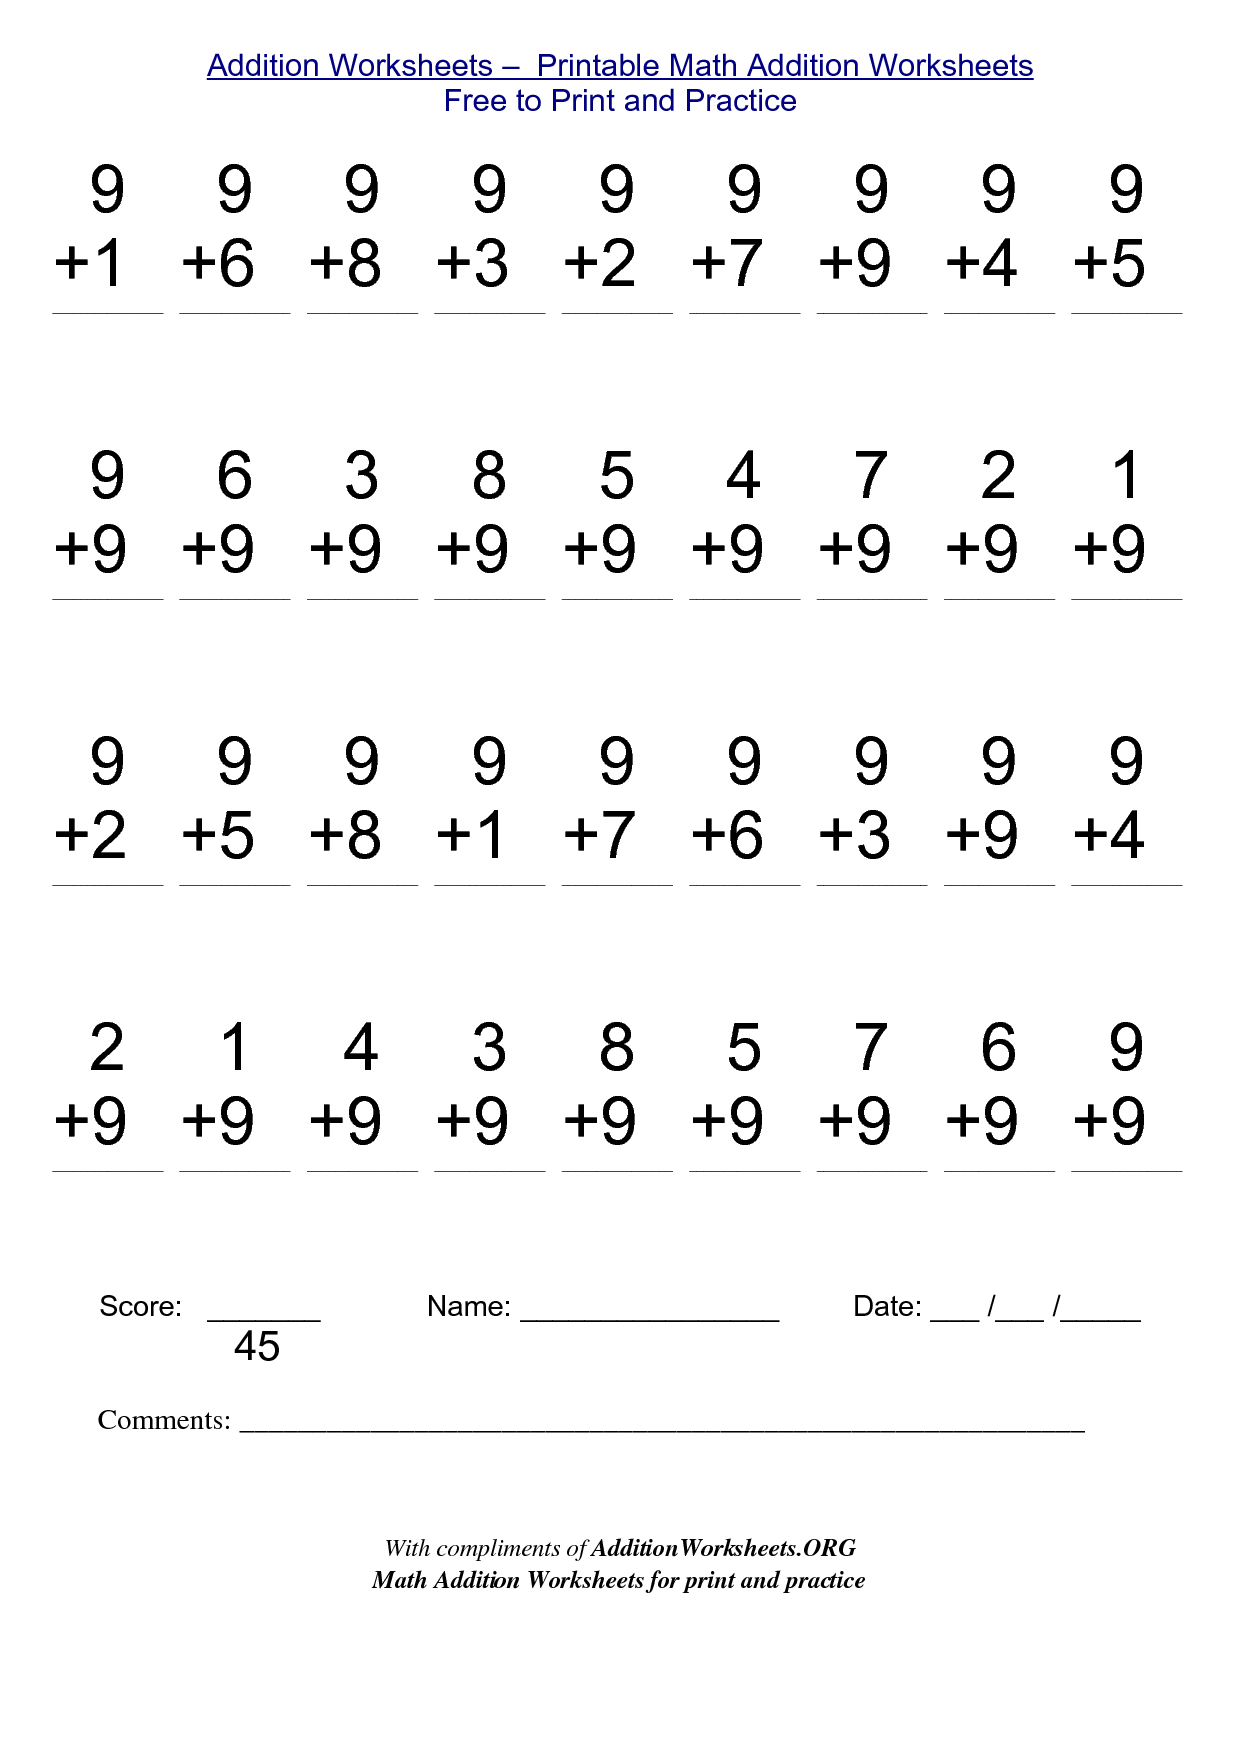 Math Worksheets for Free to Print Alot ME – Simple Addition Worksheets for First Grade